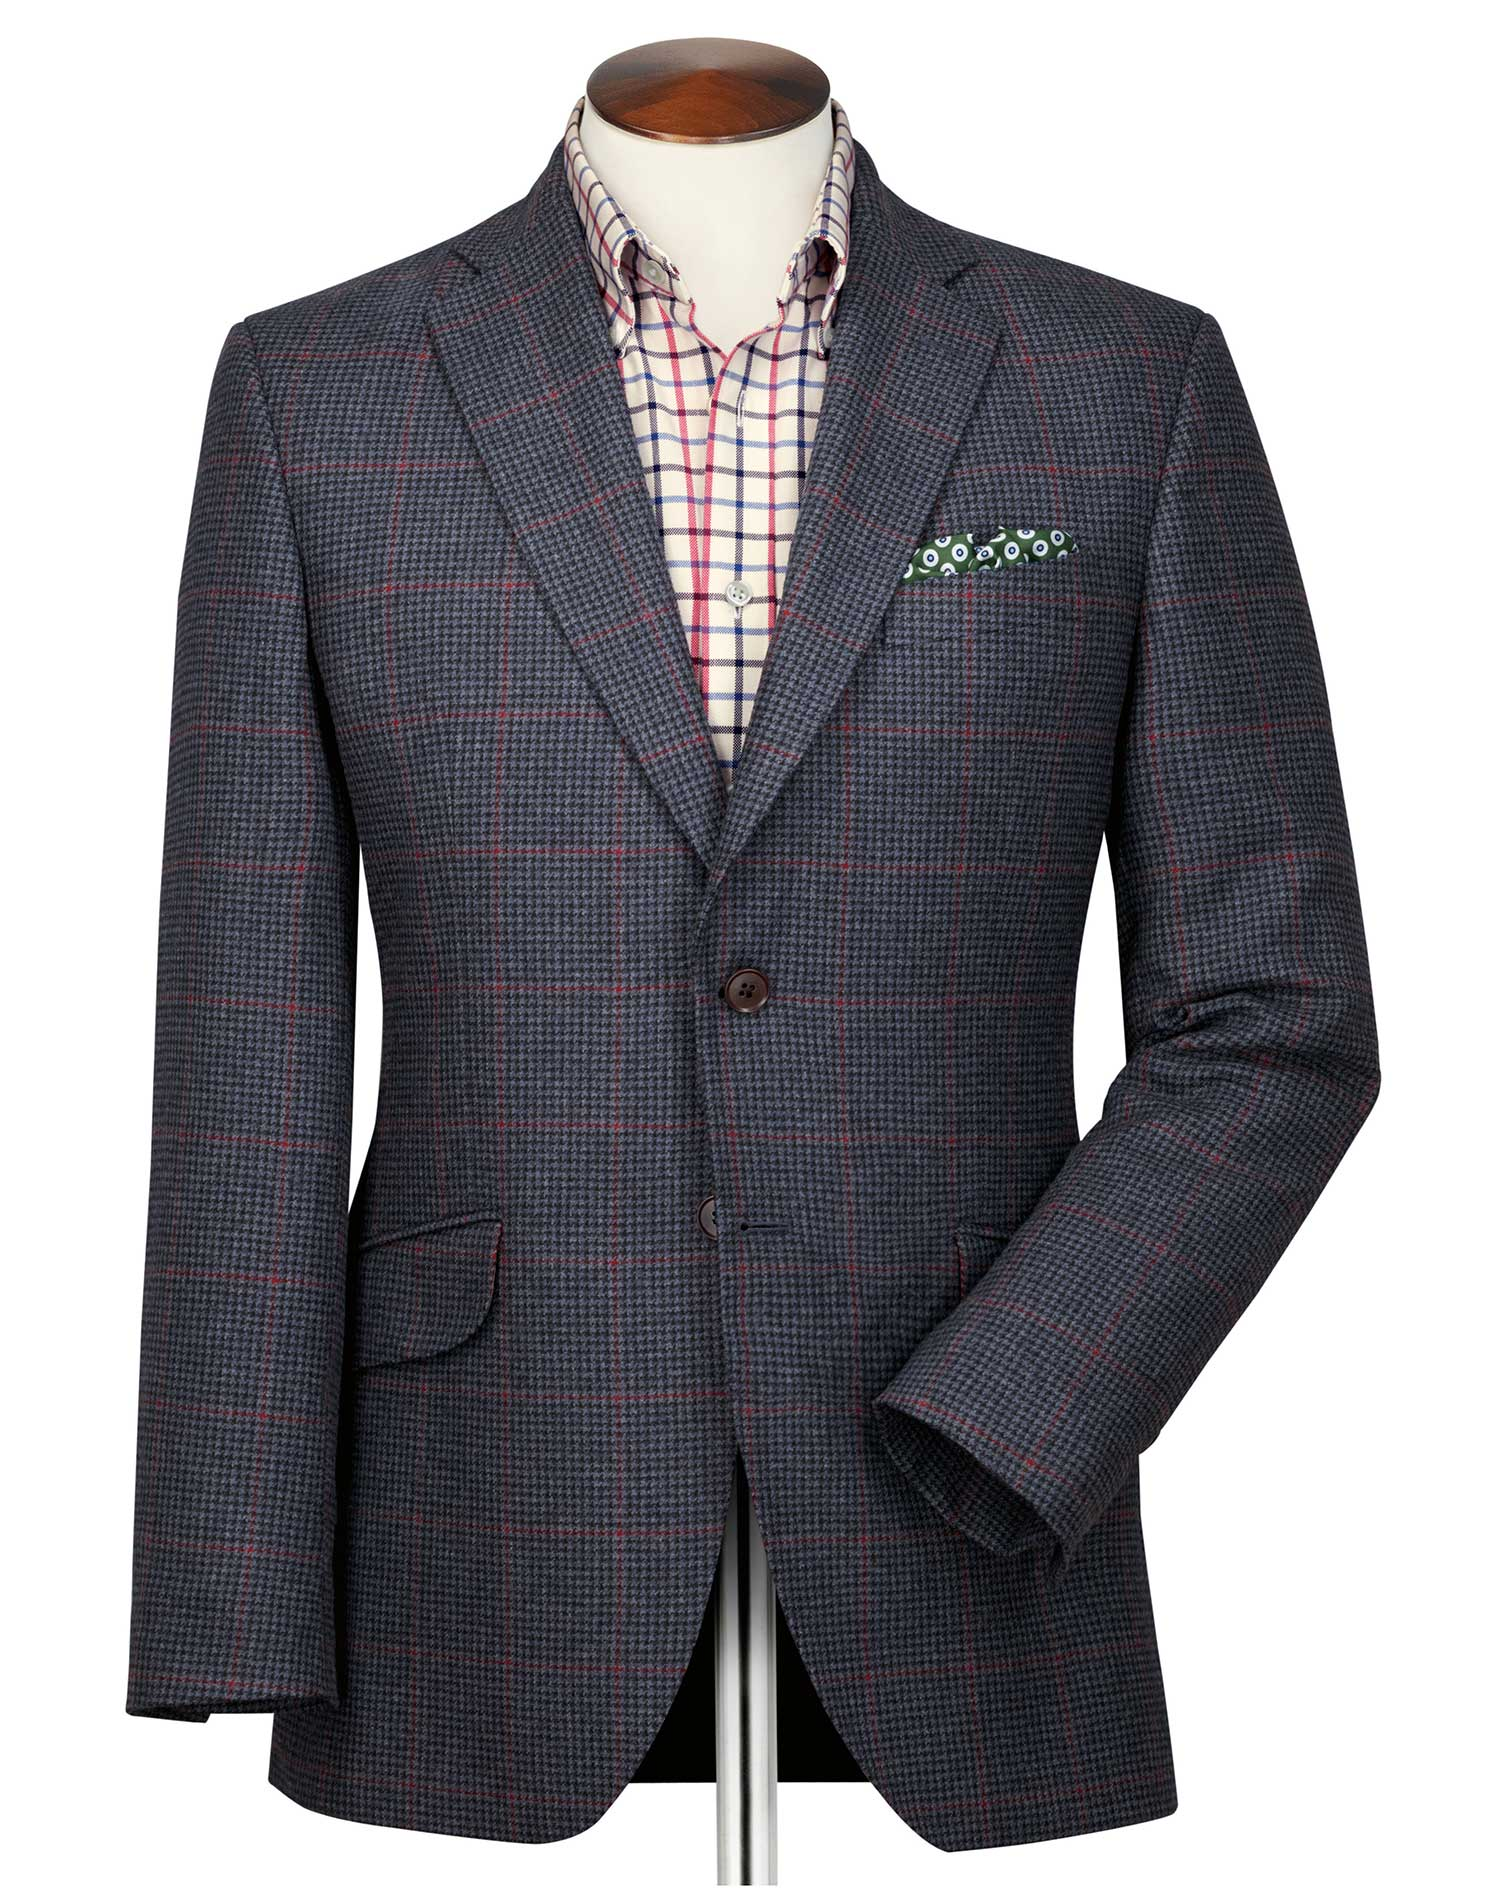 Slim Fit Navy and Pink Checkered British Tweed Jacket Size 42 Regular by Charles Tyrwhitt